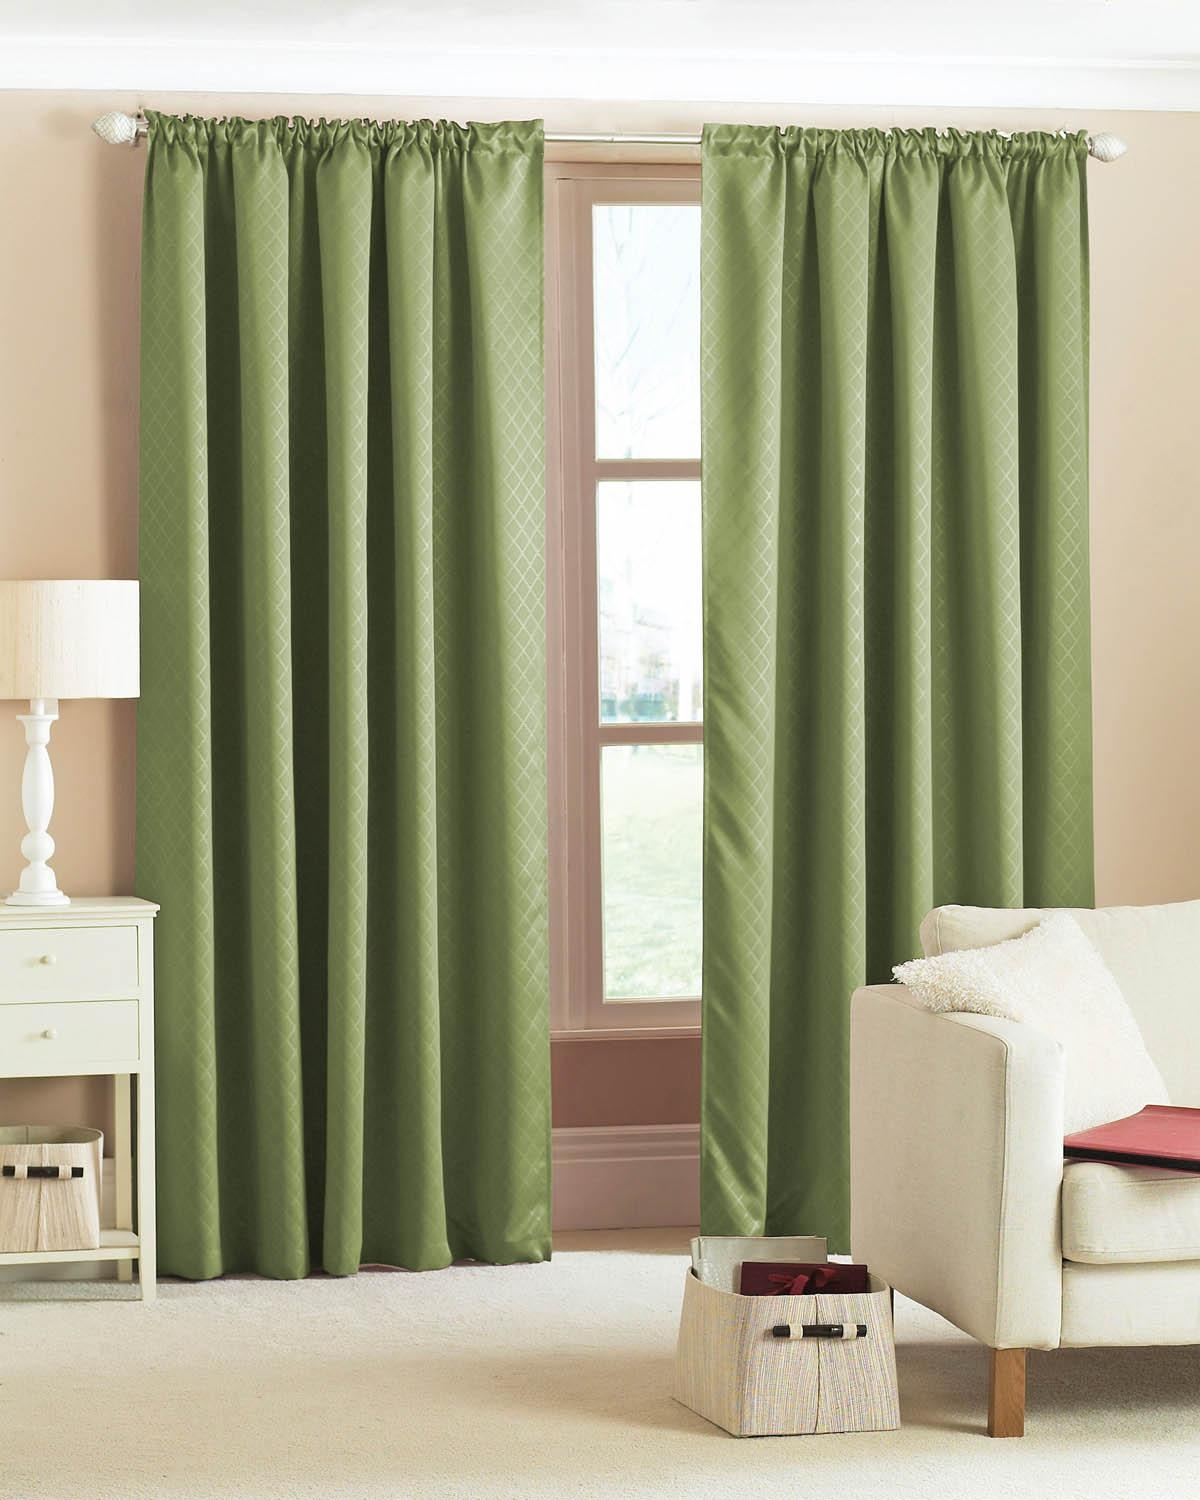 46 54 Curtains Rrp Discounts On Curtains Terrys Fabrics Throughout Short Drop Ready Made Curtains (View 15 of 15)